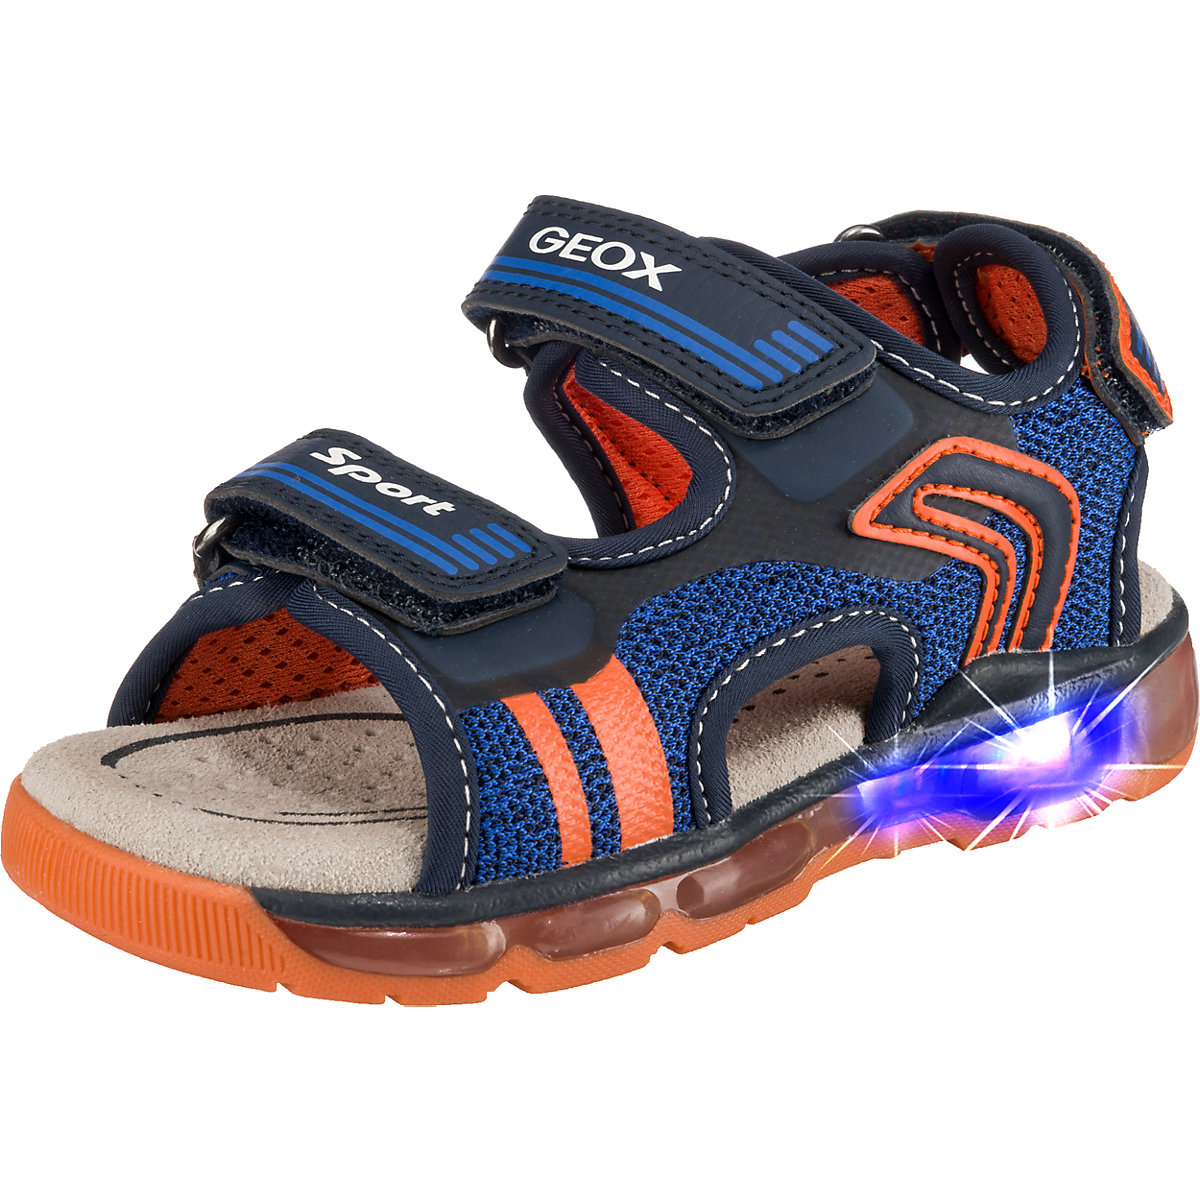 GEOX Sandals 10185267 children's shoes comfortable and light girls and boys sandals adidas s74649 sports and entertainment for boys